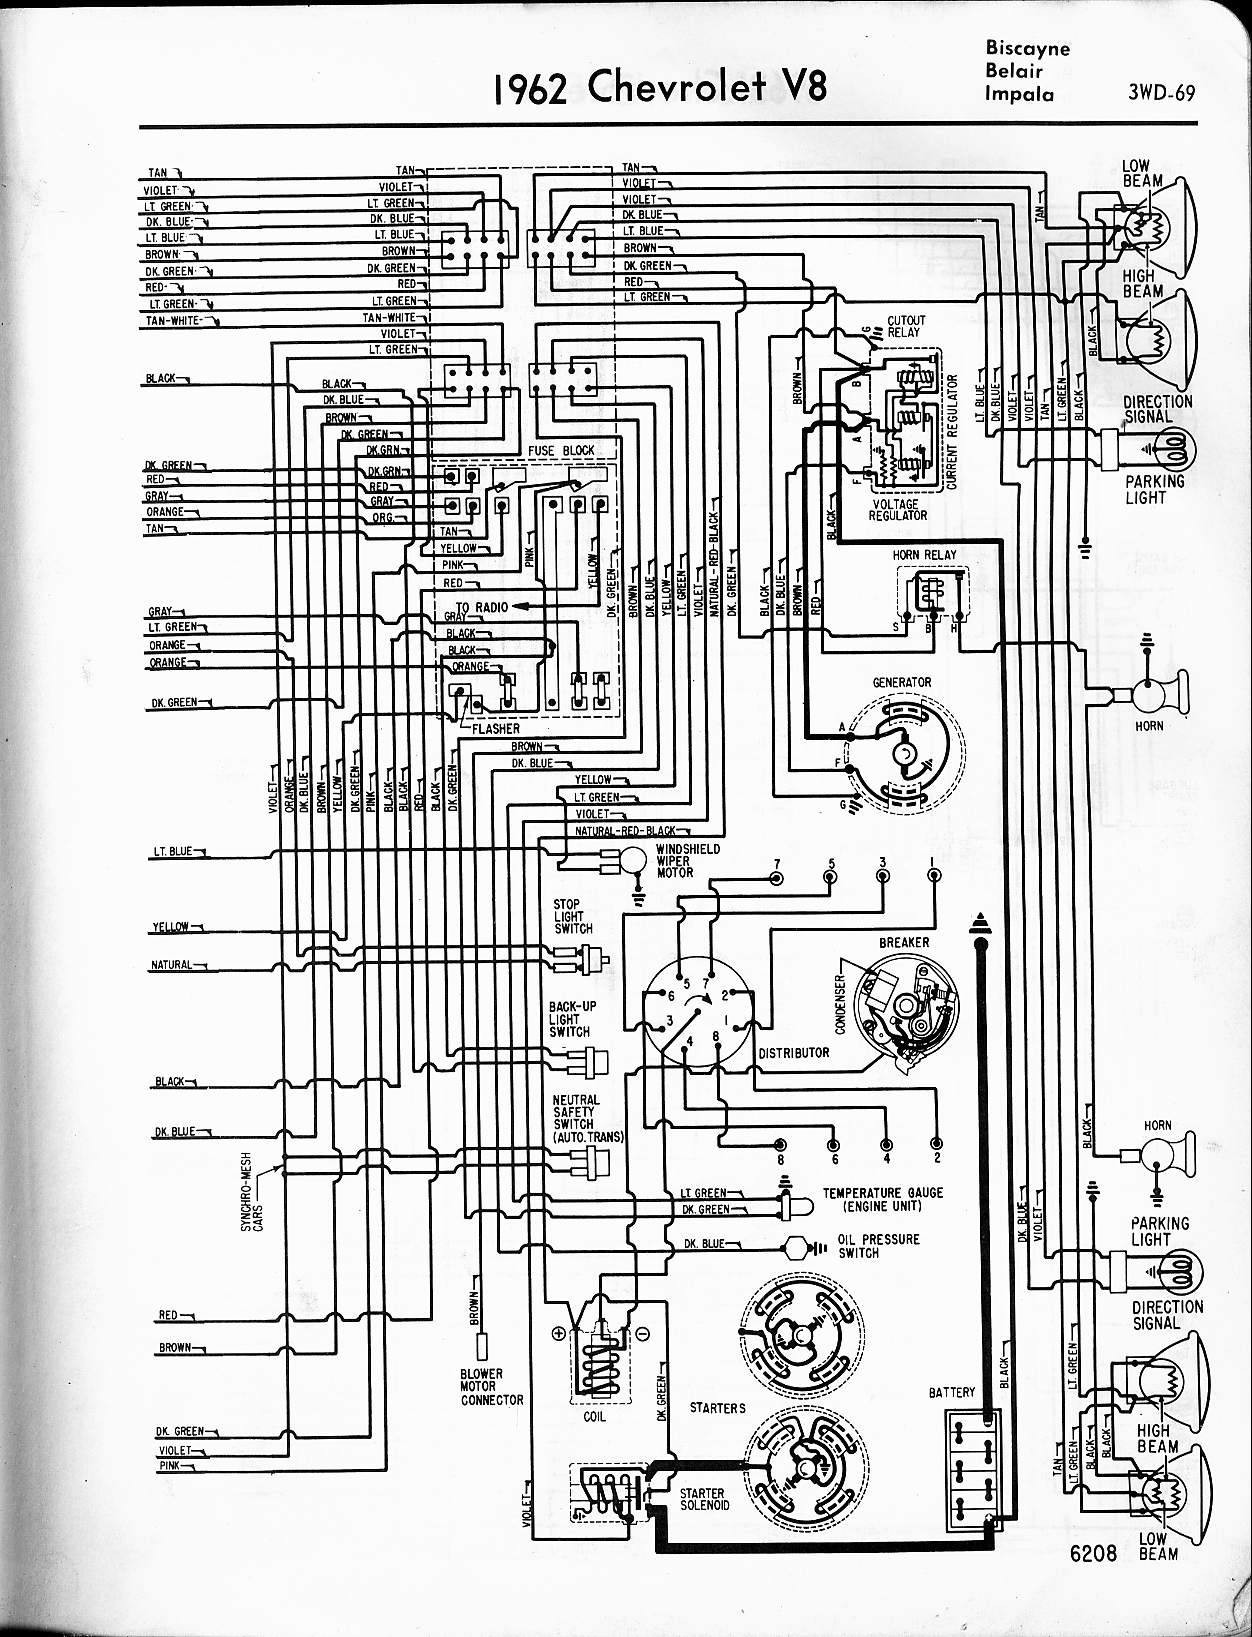 Diagram Of A Truck Turn Signal Wiring Diagram Lovely Jcb 3 0d 4—4 3 5d 4—4 Teletruk Of Diagram Of A Truck